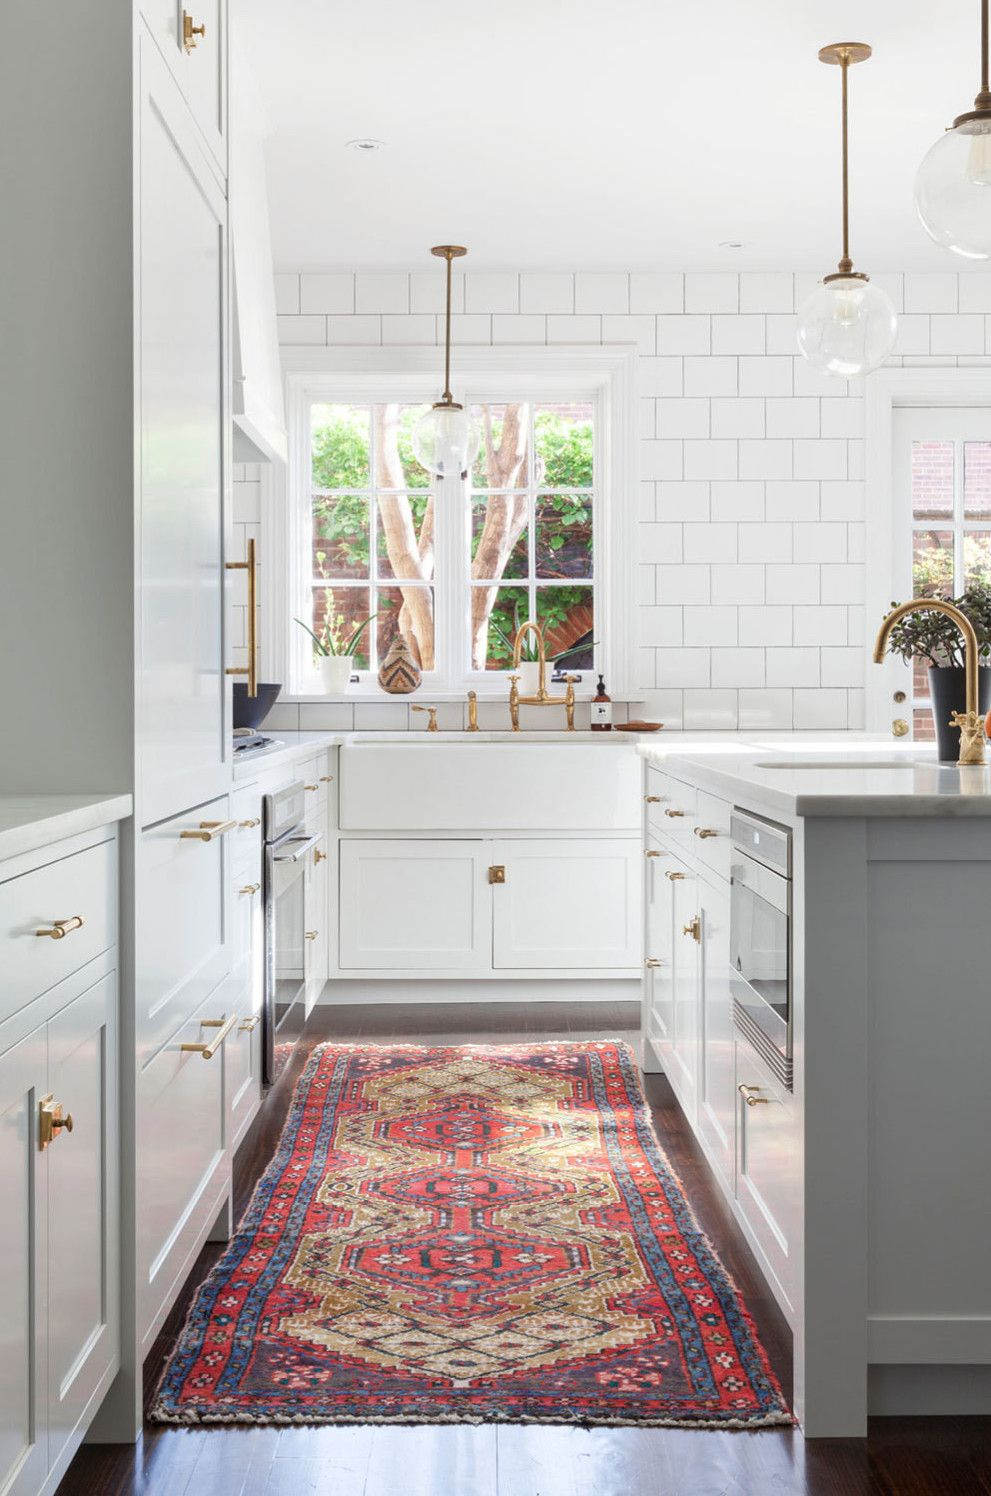 The Best Of Brass In The Kitchen | Design trends, Kitchens and ...